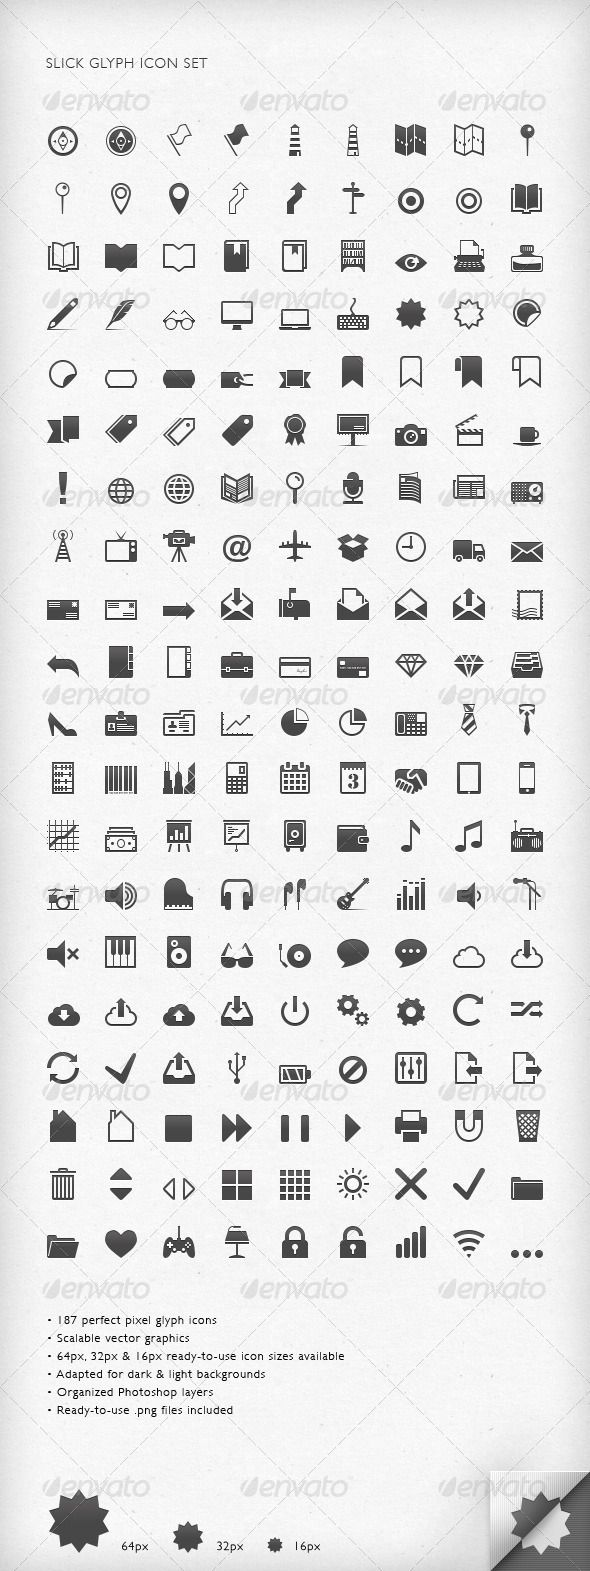 Slick Glyph Icon Set — Photoshop PSD #business icons #music icons • Available here → https://graphicriver.net/item/slick-glyph-icon-set/3037965?ref=pxcr